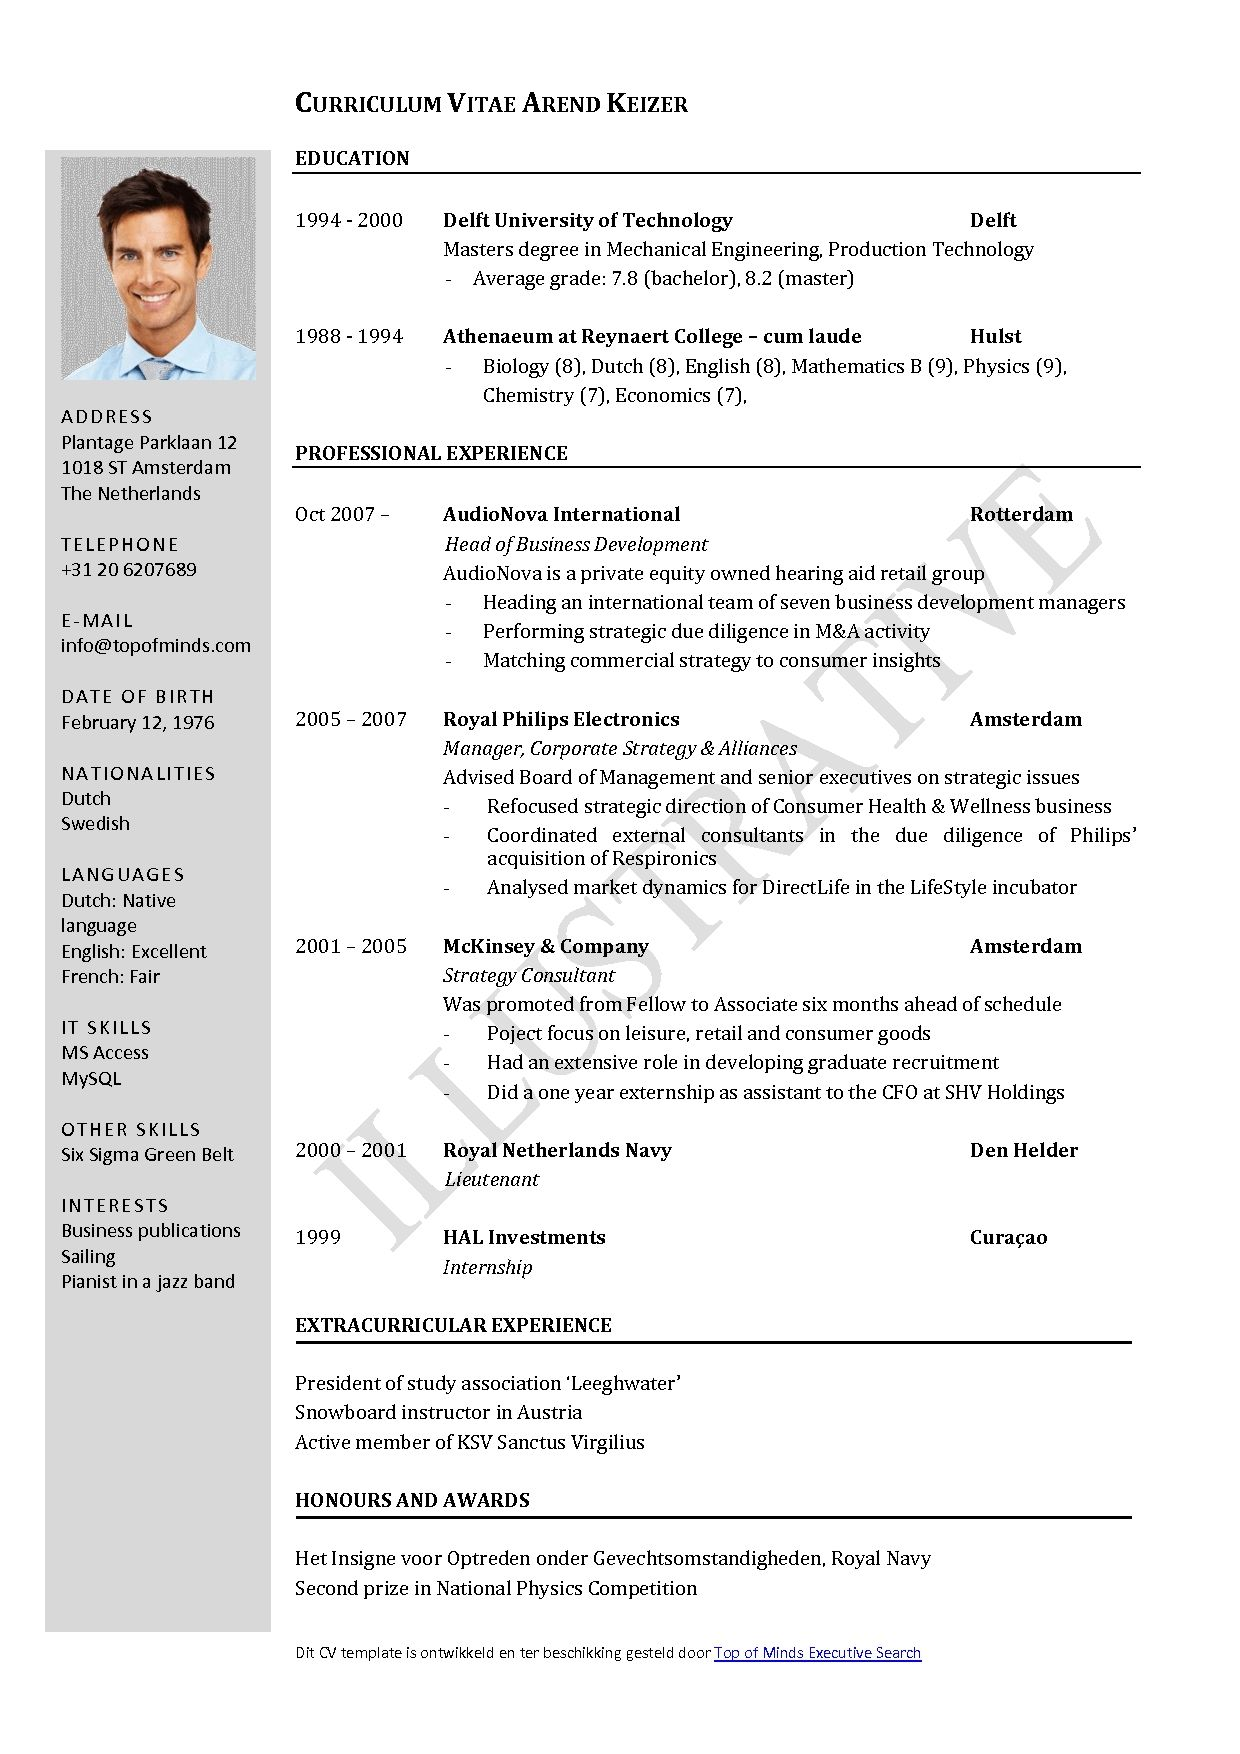 Sample Resume Format Pdf Cover Letter Examples Bad Designing Infographic Job Resume Format Curriculum Vitae Template Free Resume Template Download